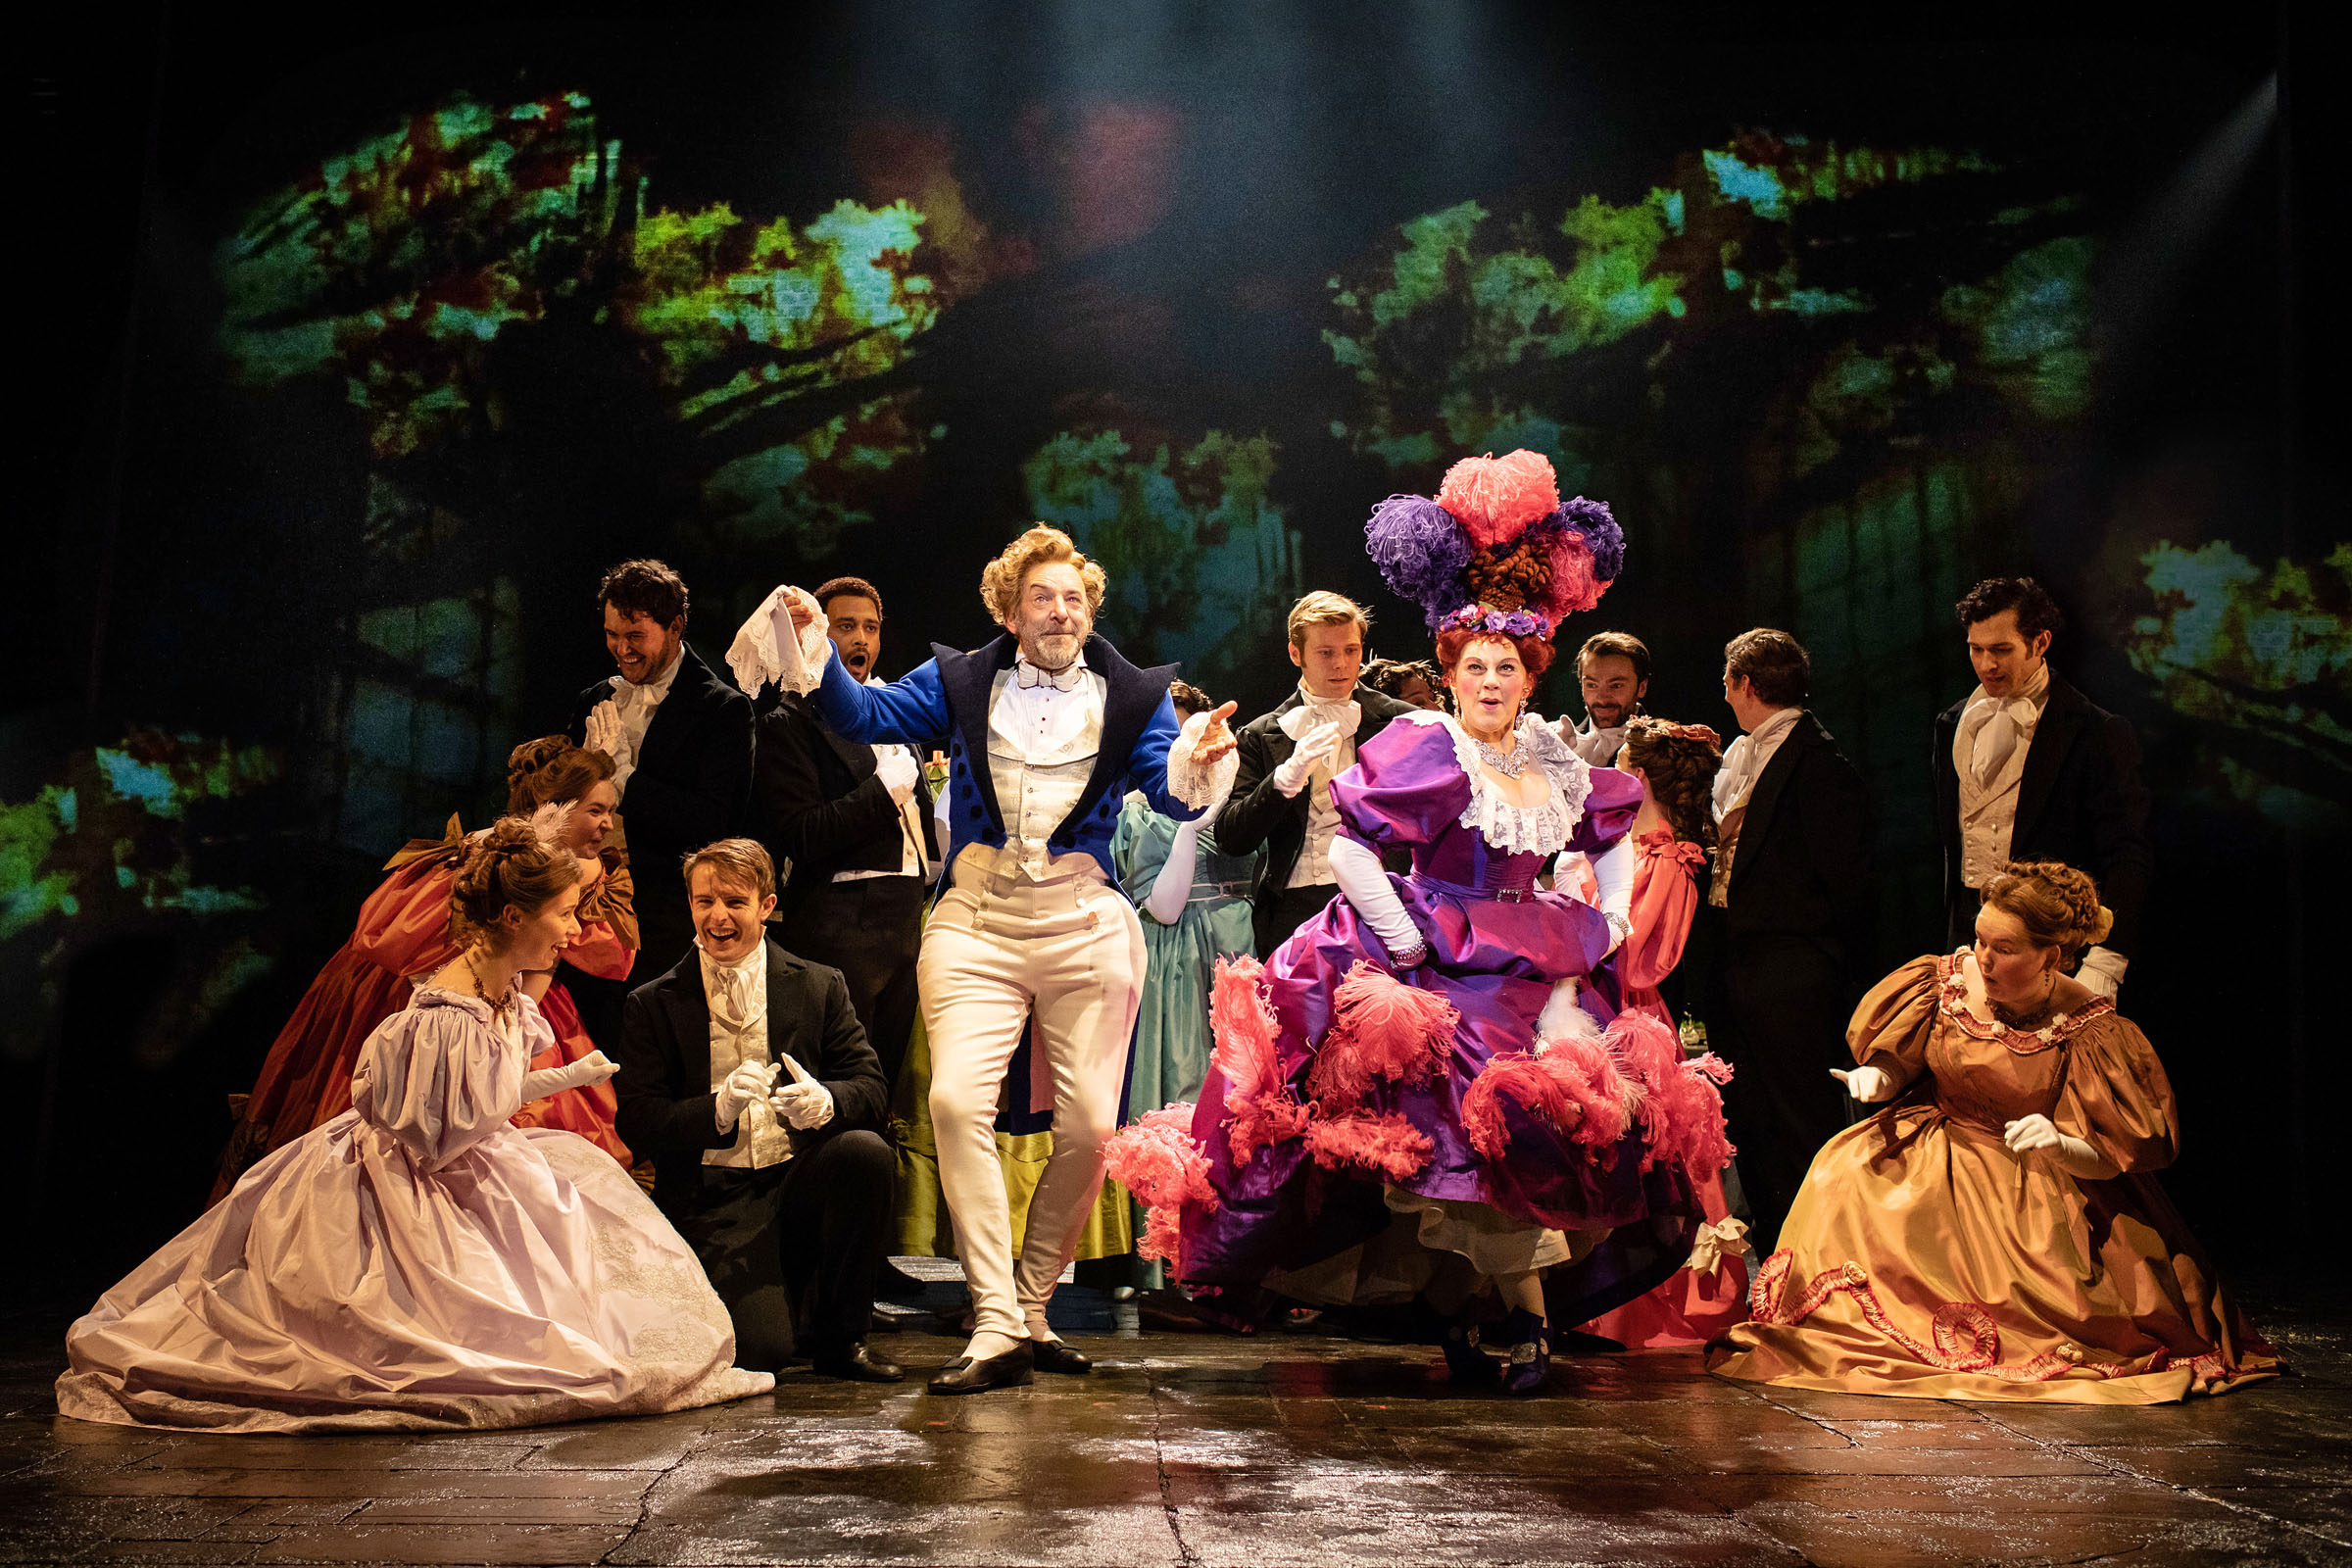 Martin Ball as Thernardier and Sophie Louise Dann as Madame Thernadier with the cast of the Les Misérables UK and Ireland Tour